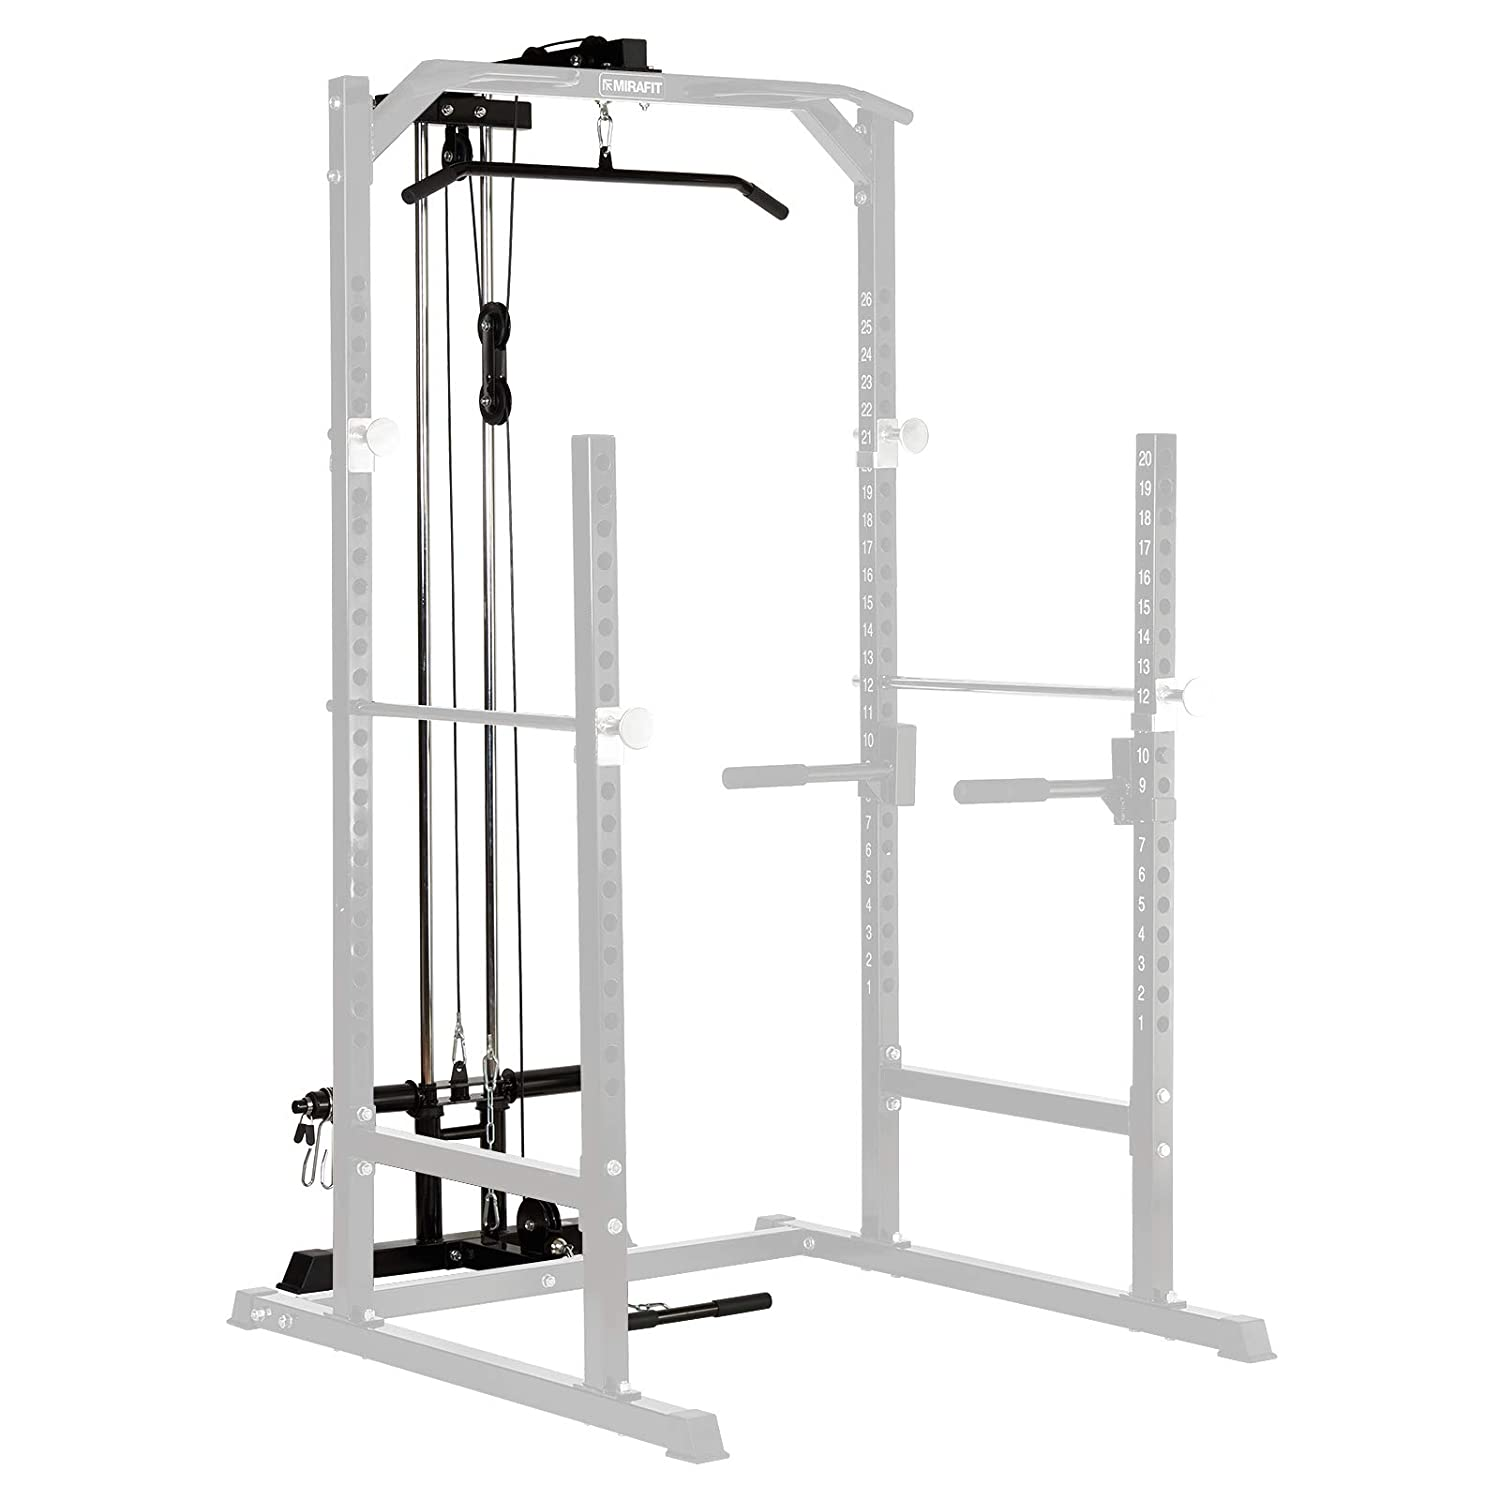 Mirafit Cable System Upgrade Kit for Half Power Cage